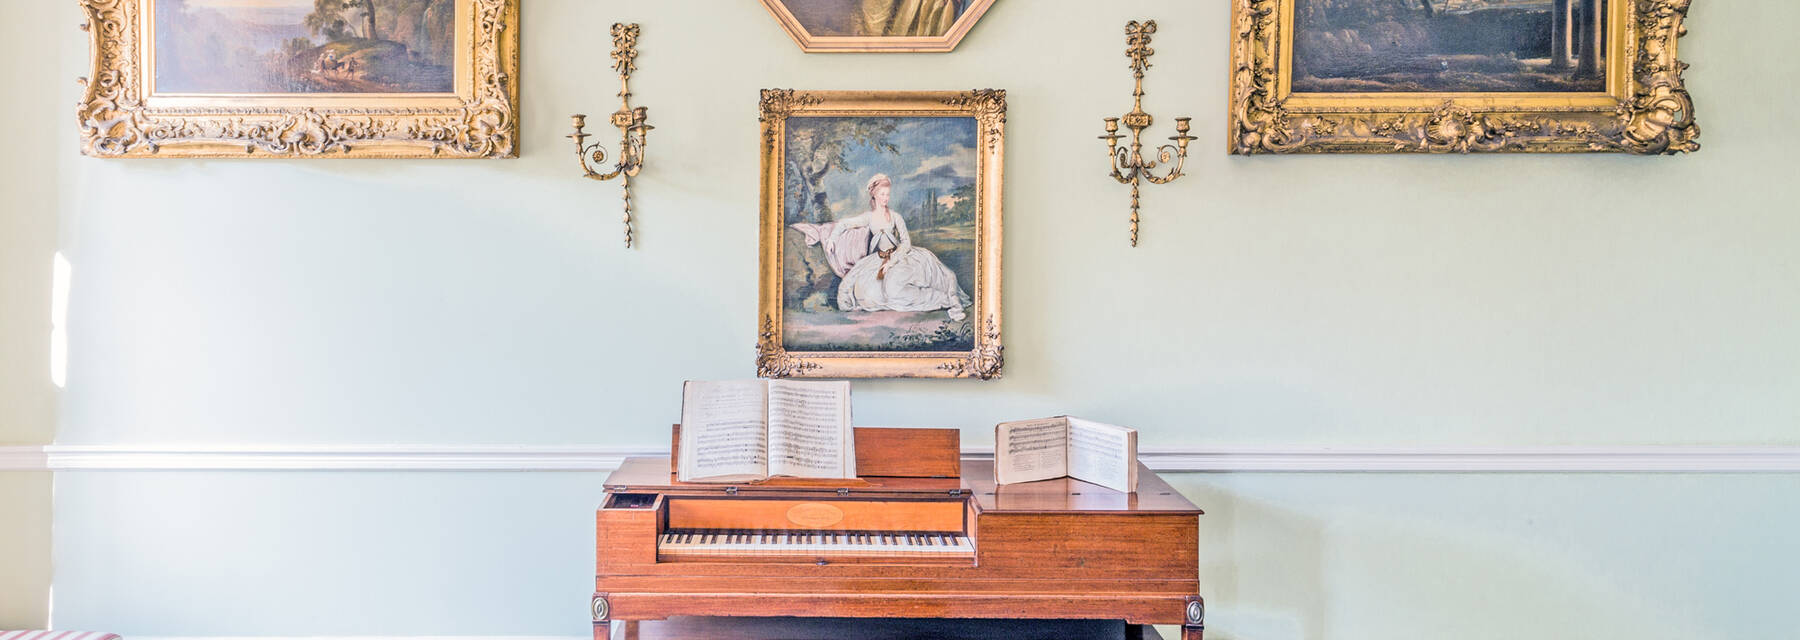 The drawing room with square piano and paintings